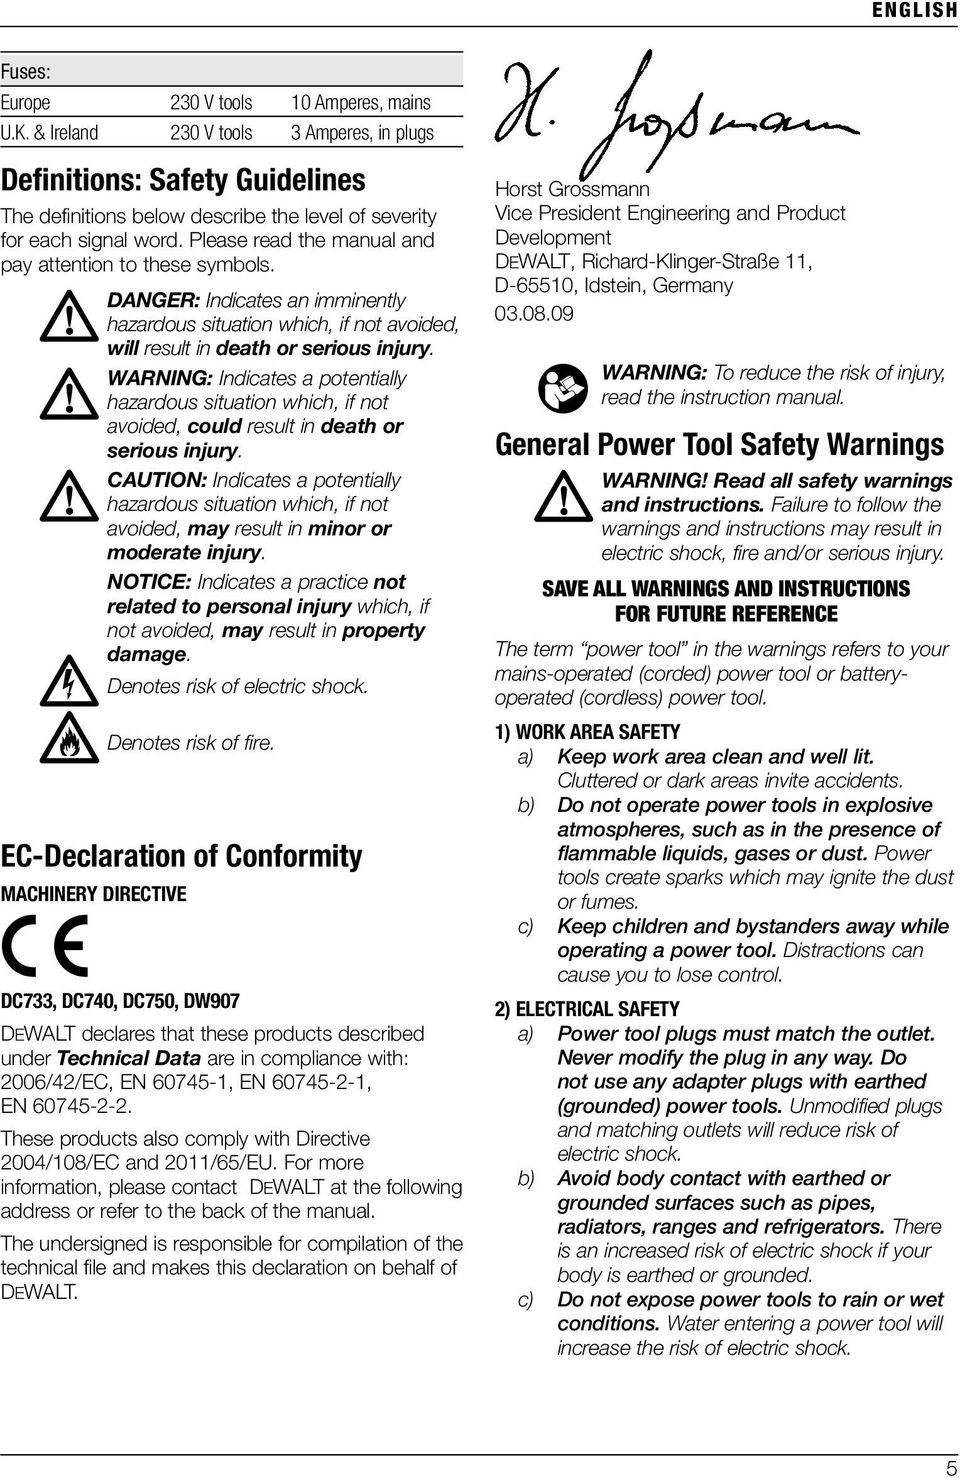 Please read the manual and pay attention to these symbols. DANGER: Indicates an imminently hazardous situation which, if not avoided, will result in death or serious injury.